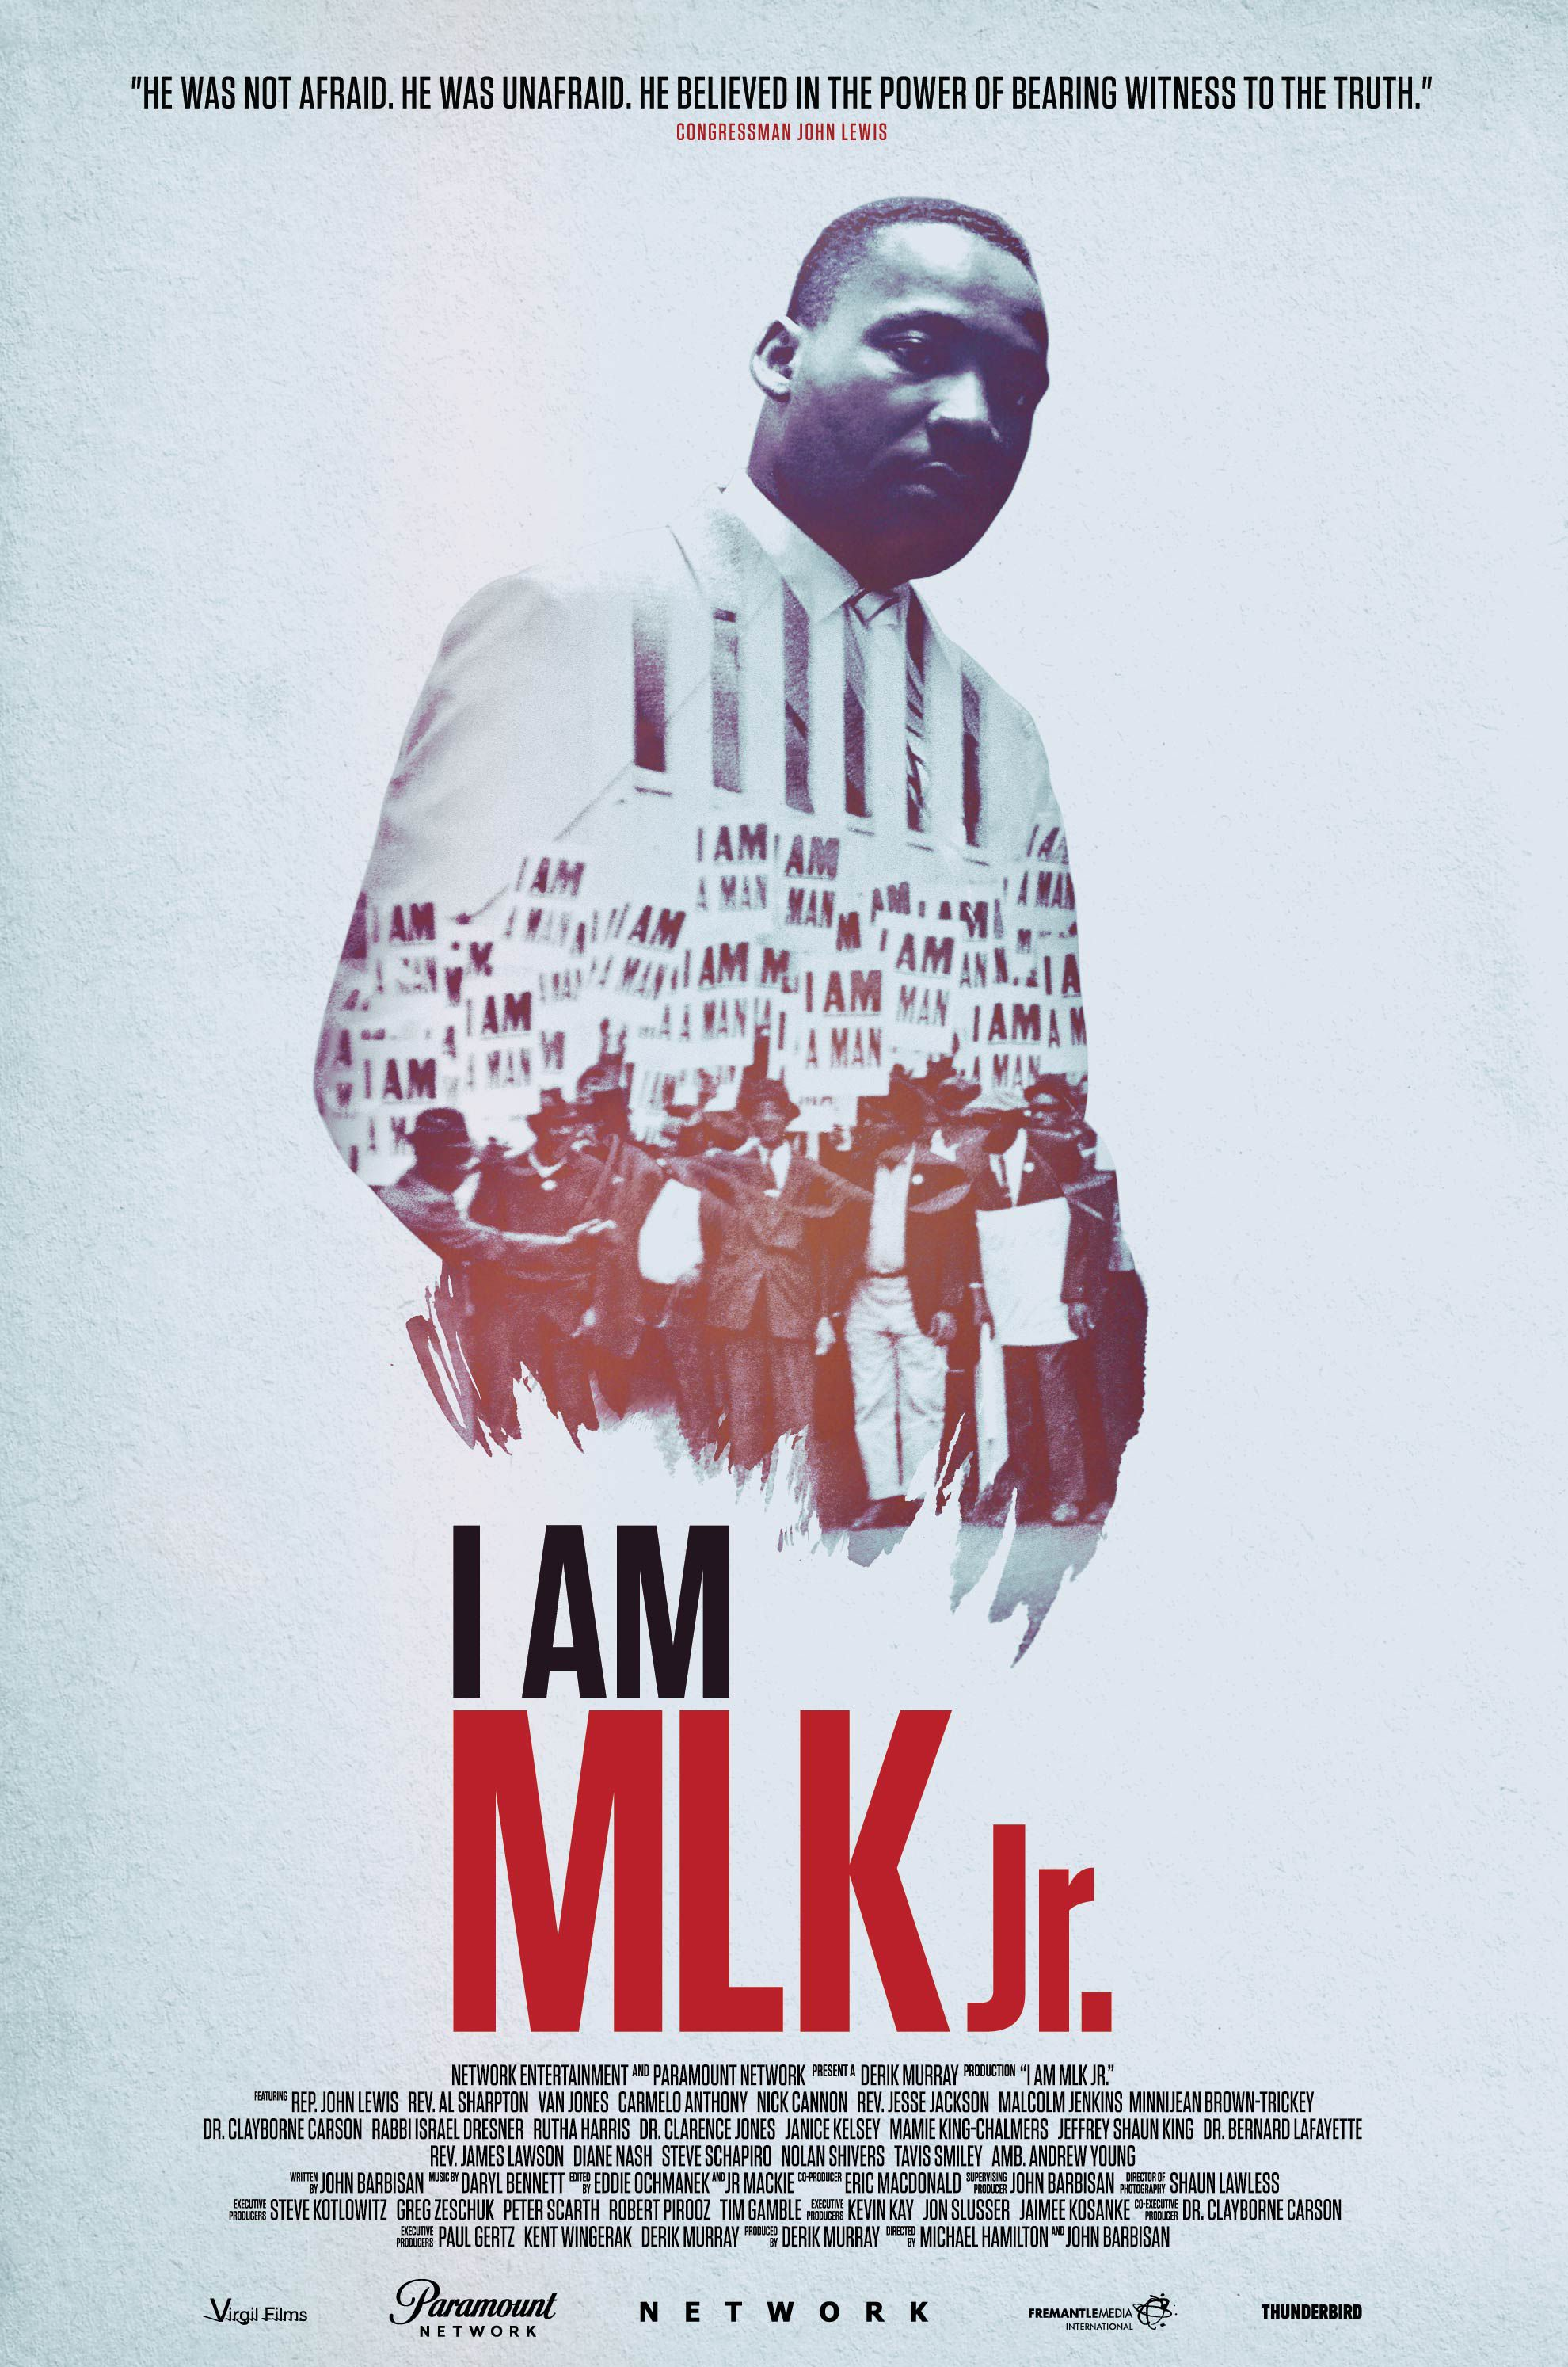 Je suis Martin Luther King - Documentaire (2018)